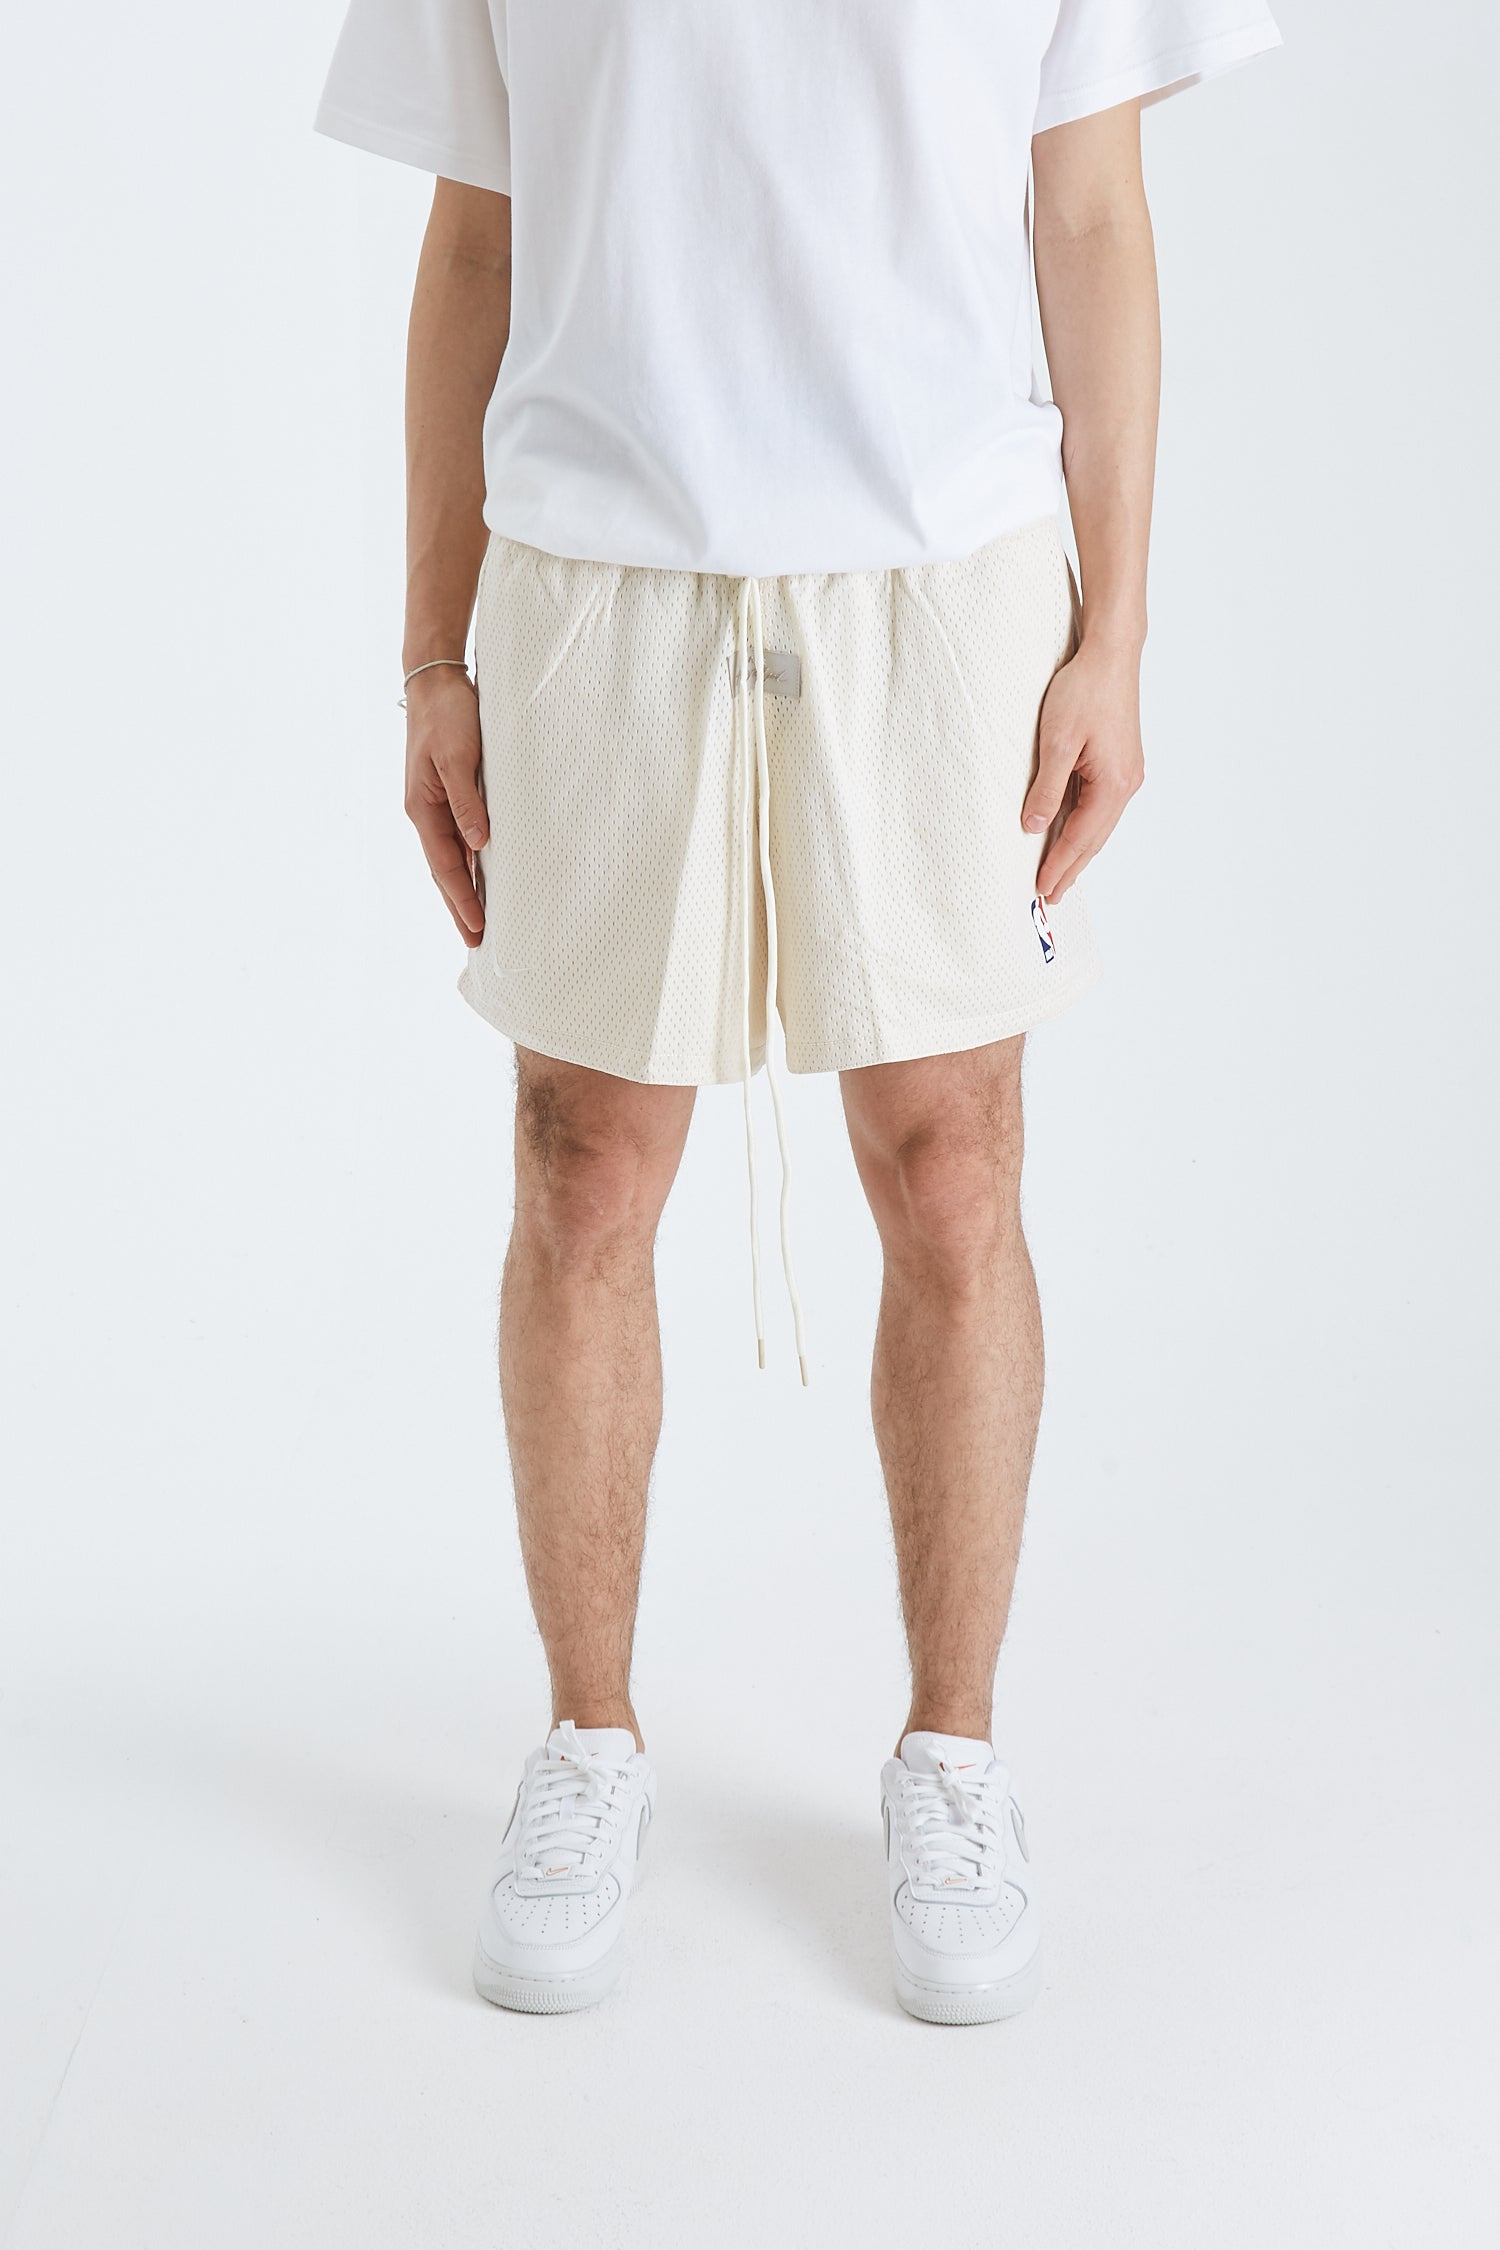 x Fear Of God Basketballs Short